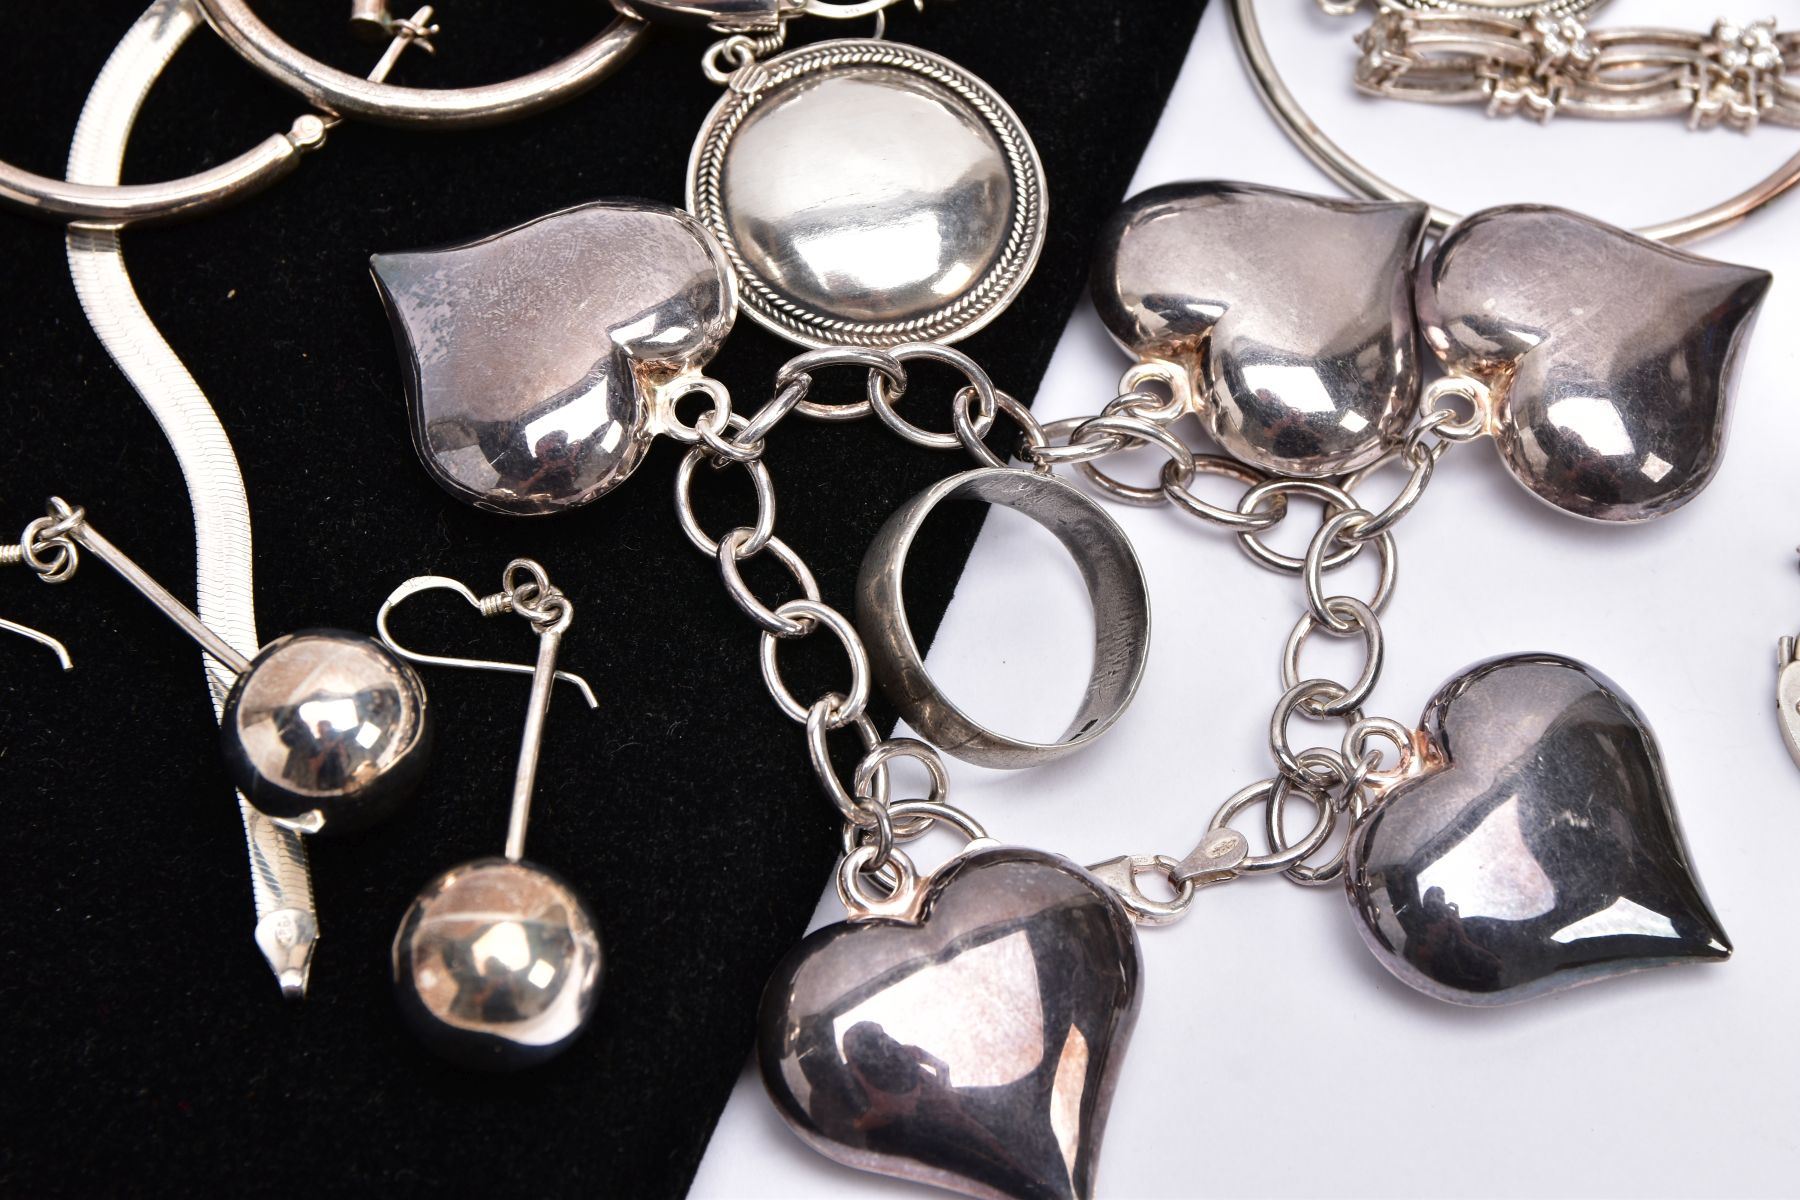 A BAG OF ASSORTED SILVER AND WHITE METAL JEWELLERY, to include a silver charm bracelet suspending - Image 2 of 5